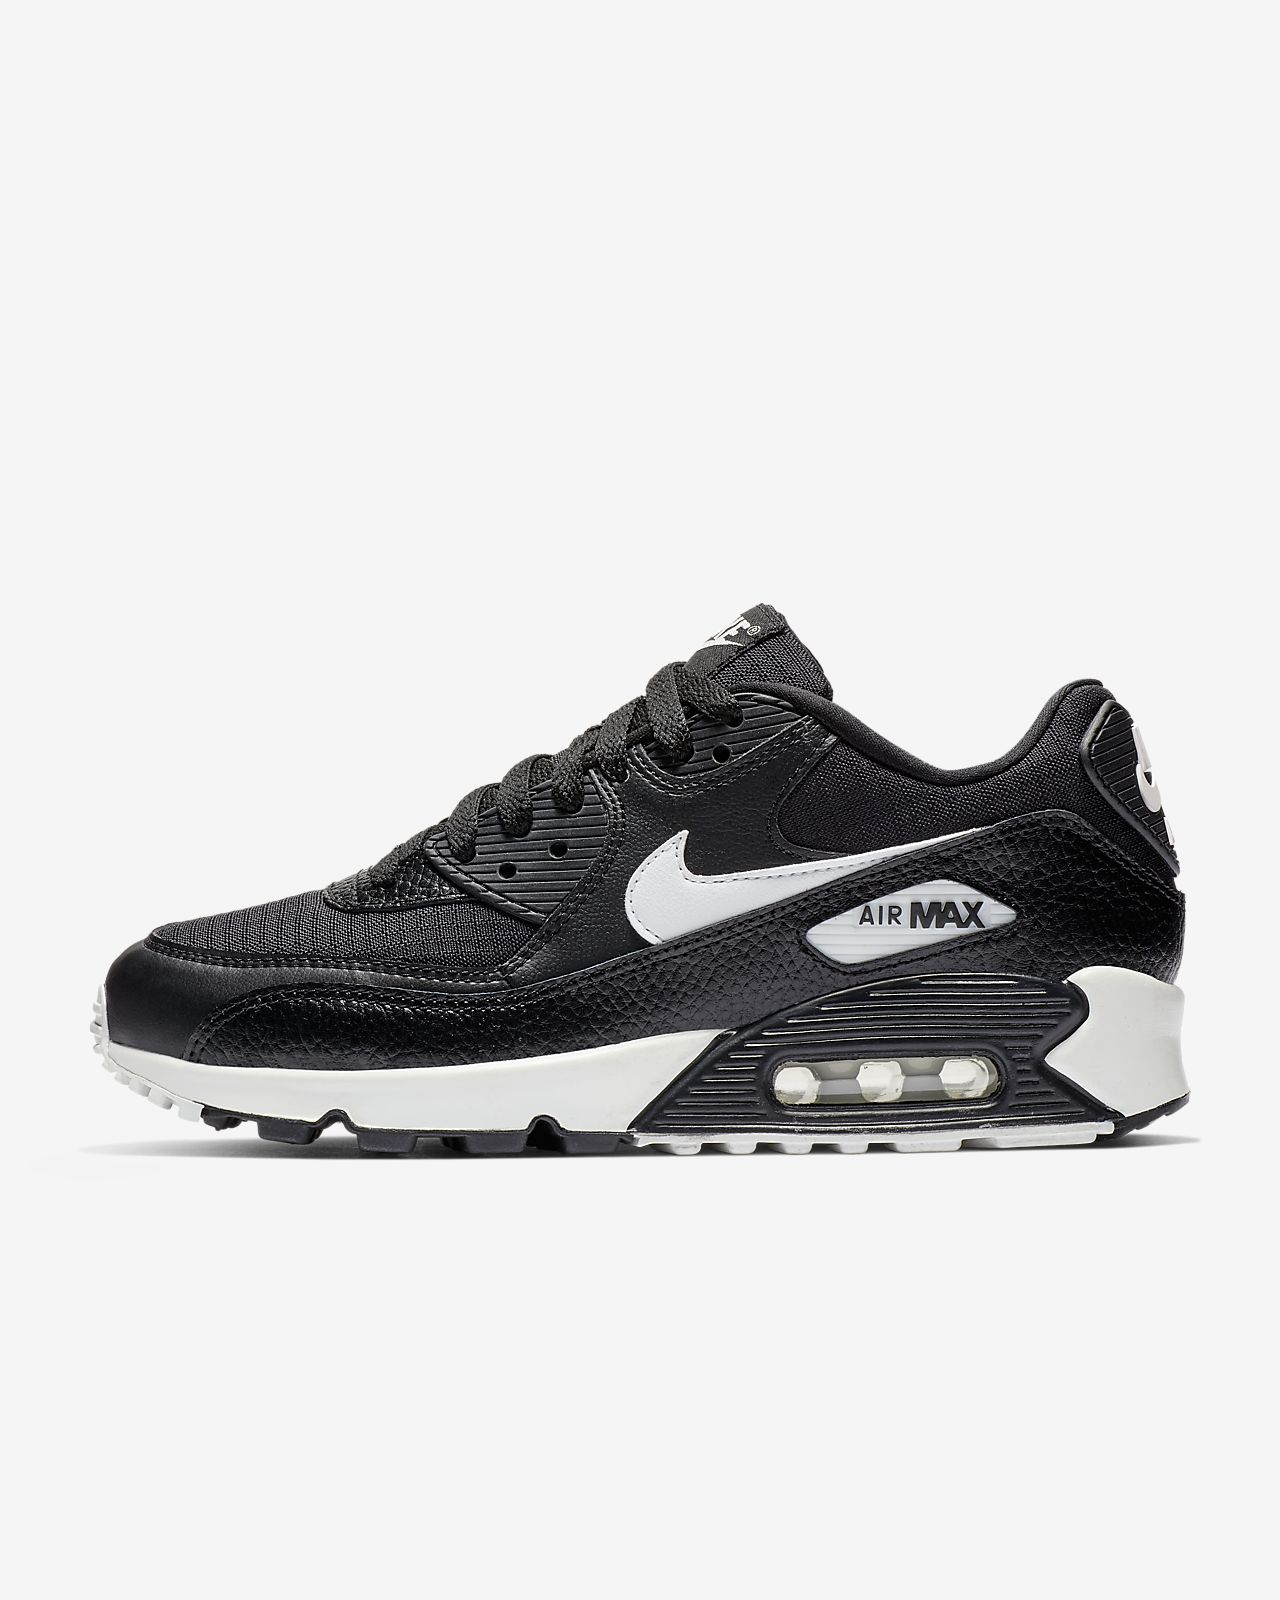 45944c1e138d Nike Air Max 90 Women s Shoe. Nike.com AU